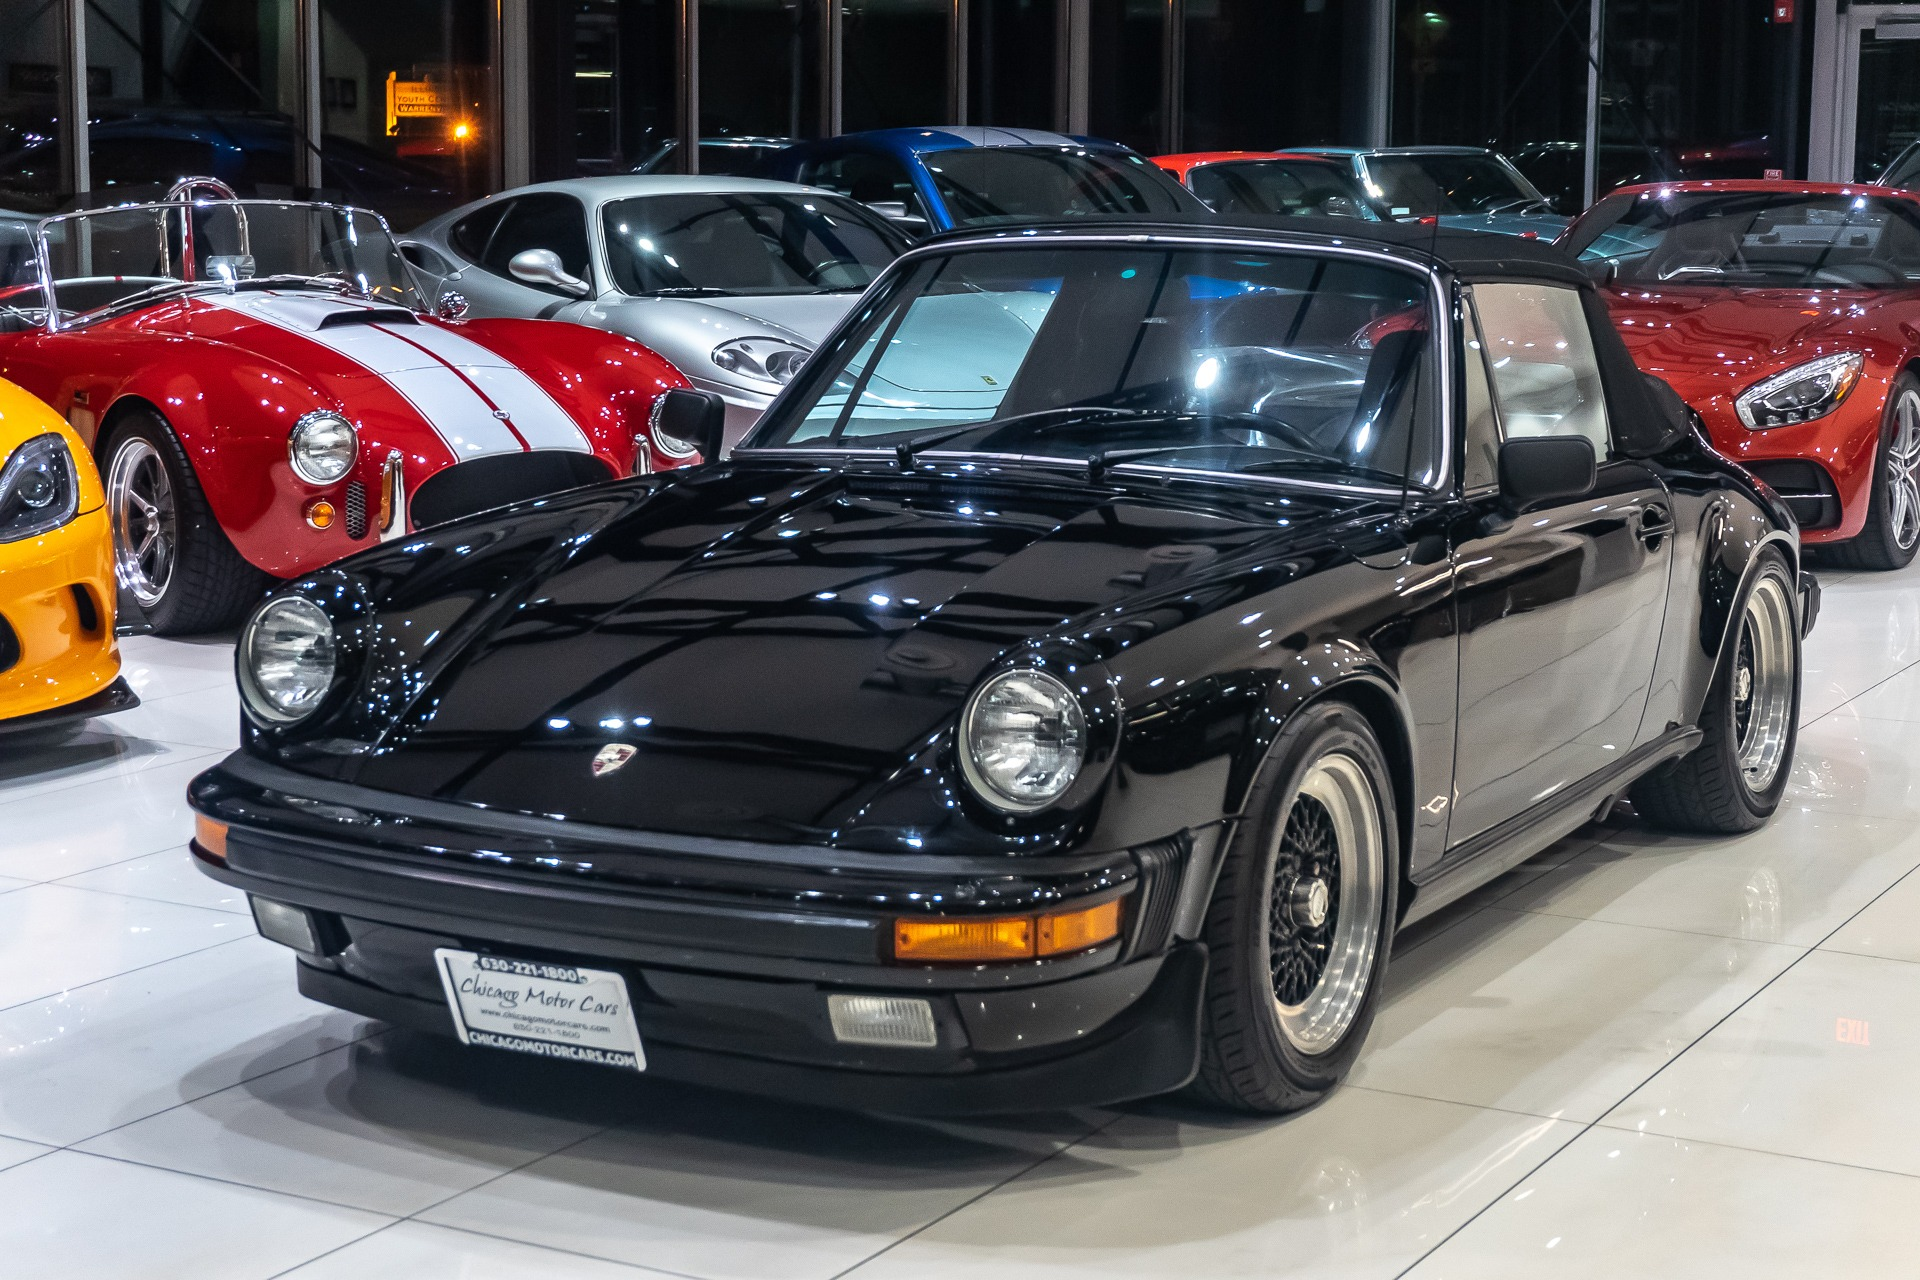 Used-1977-Porsche-911-SC-Custom-Convertible-ONLY-32K-MILES-RARE-TASTEFULLY-UPGRADED